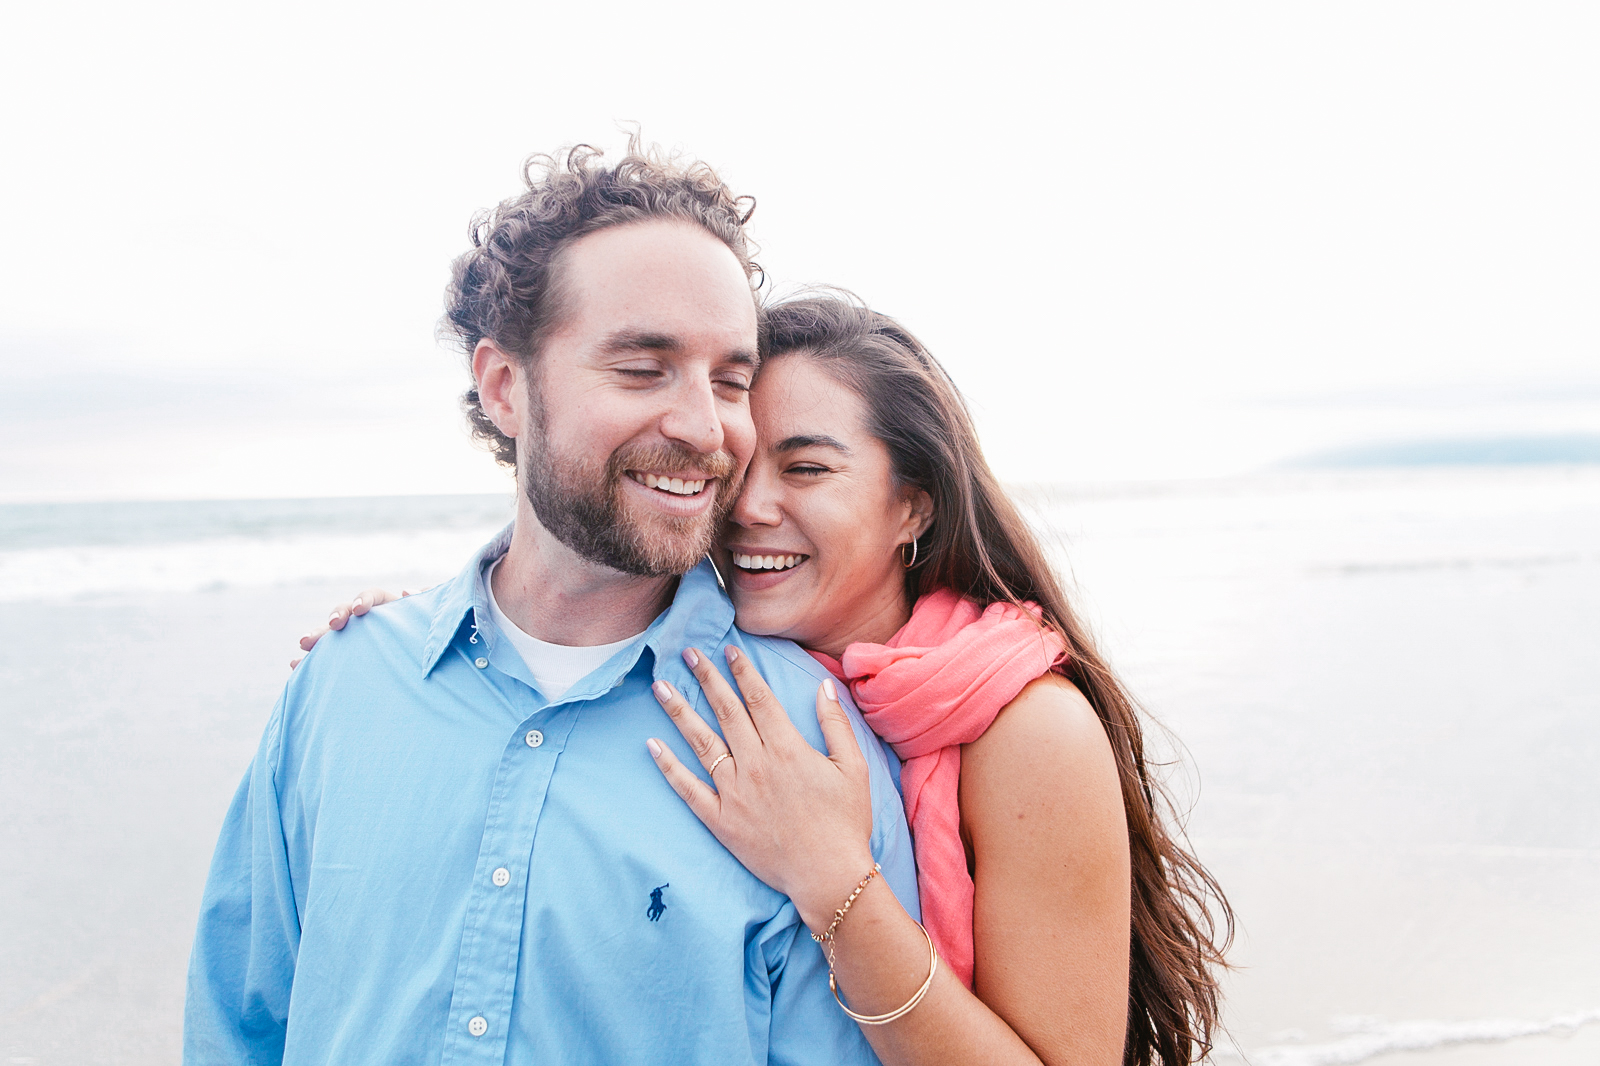 VENICE_BEACH_ENGAGEMENT_PHOTOGRAPHY_EBONY_SIOVHAN_BOKEH_PHOTOGRAPHY_-20.jpg